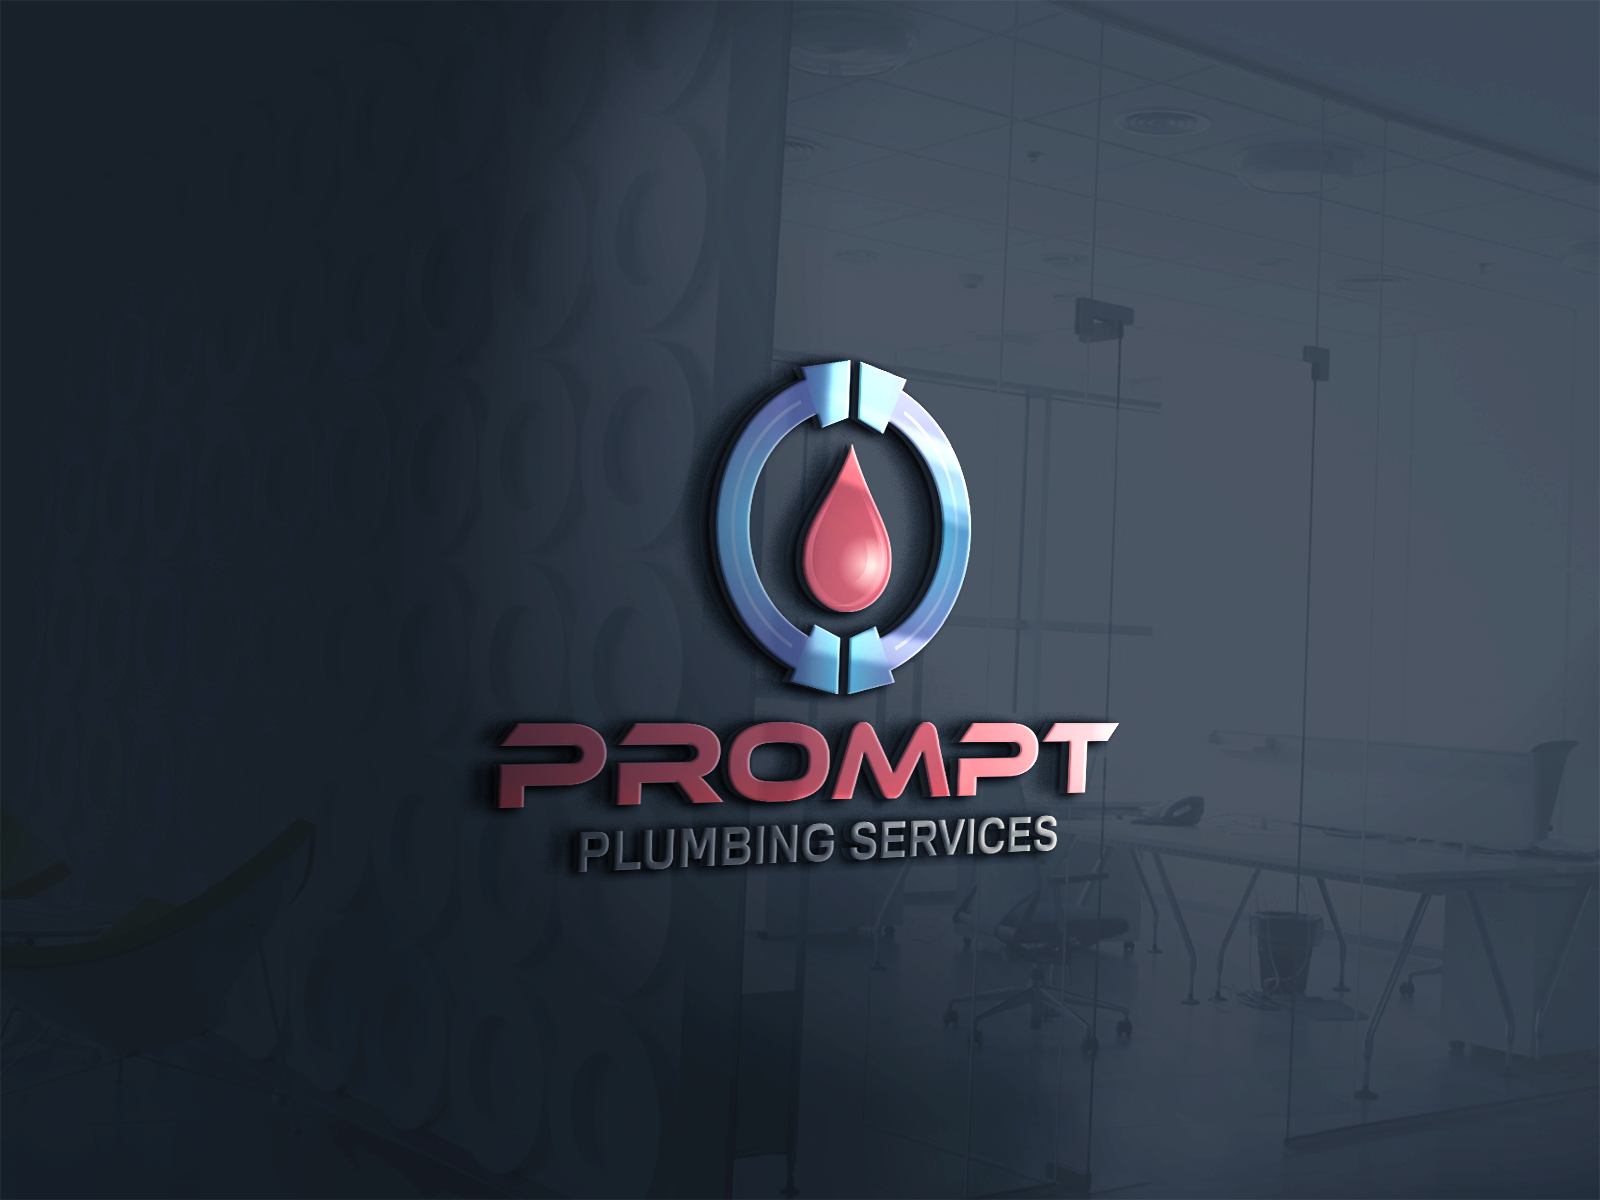 Logo Design by Ahaan - Entry No. 82 in the Logo Design Contest Artistic Logo Design for Prompt Plumbing Services.